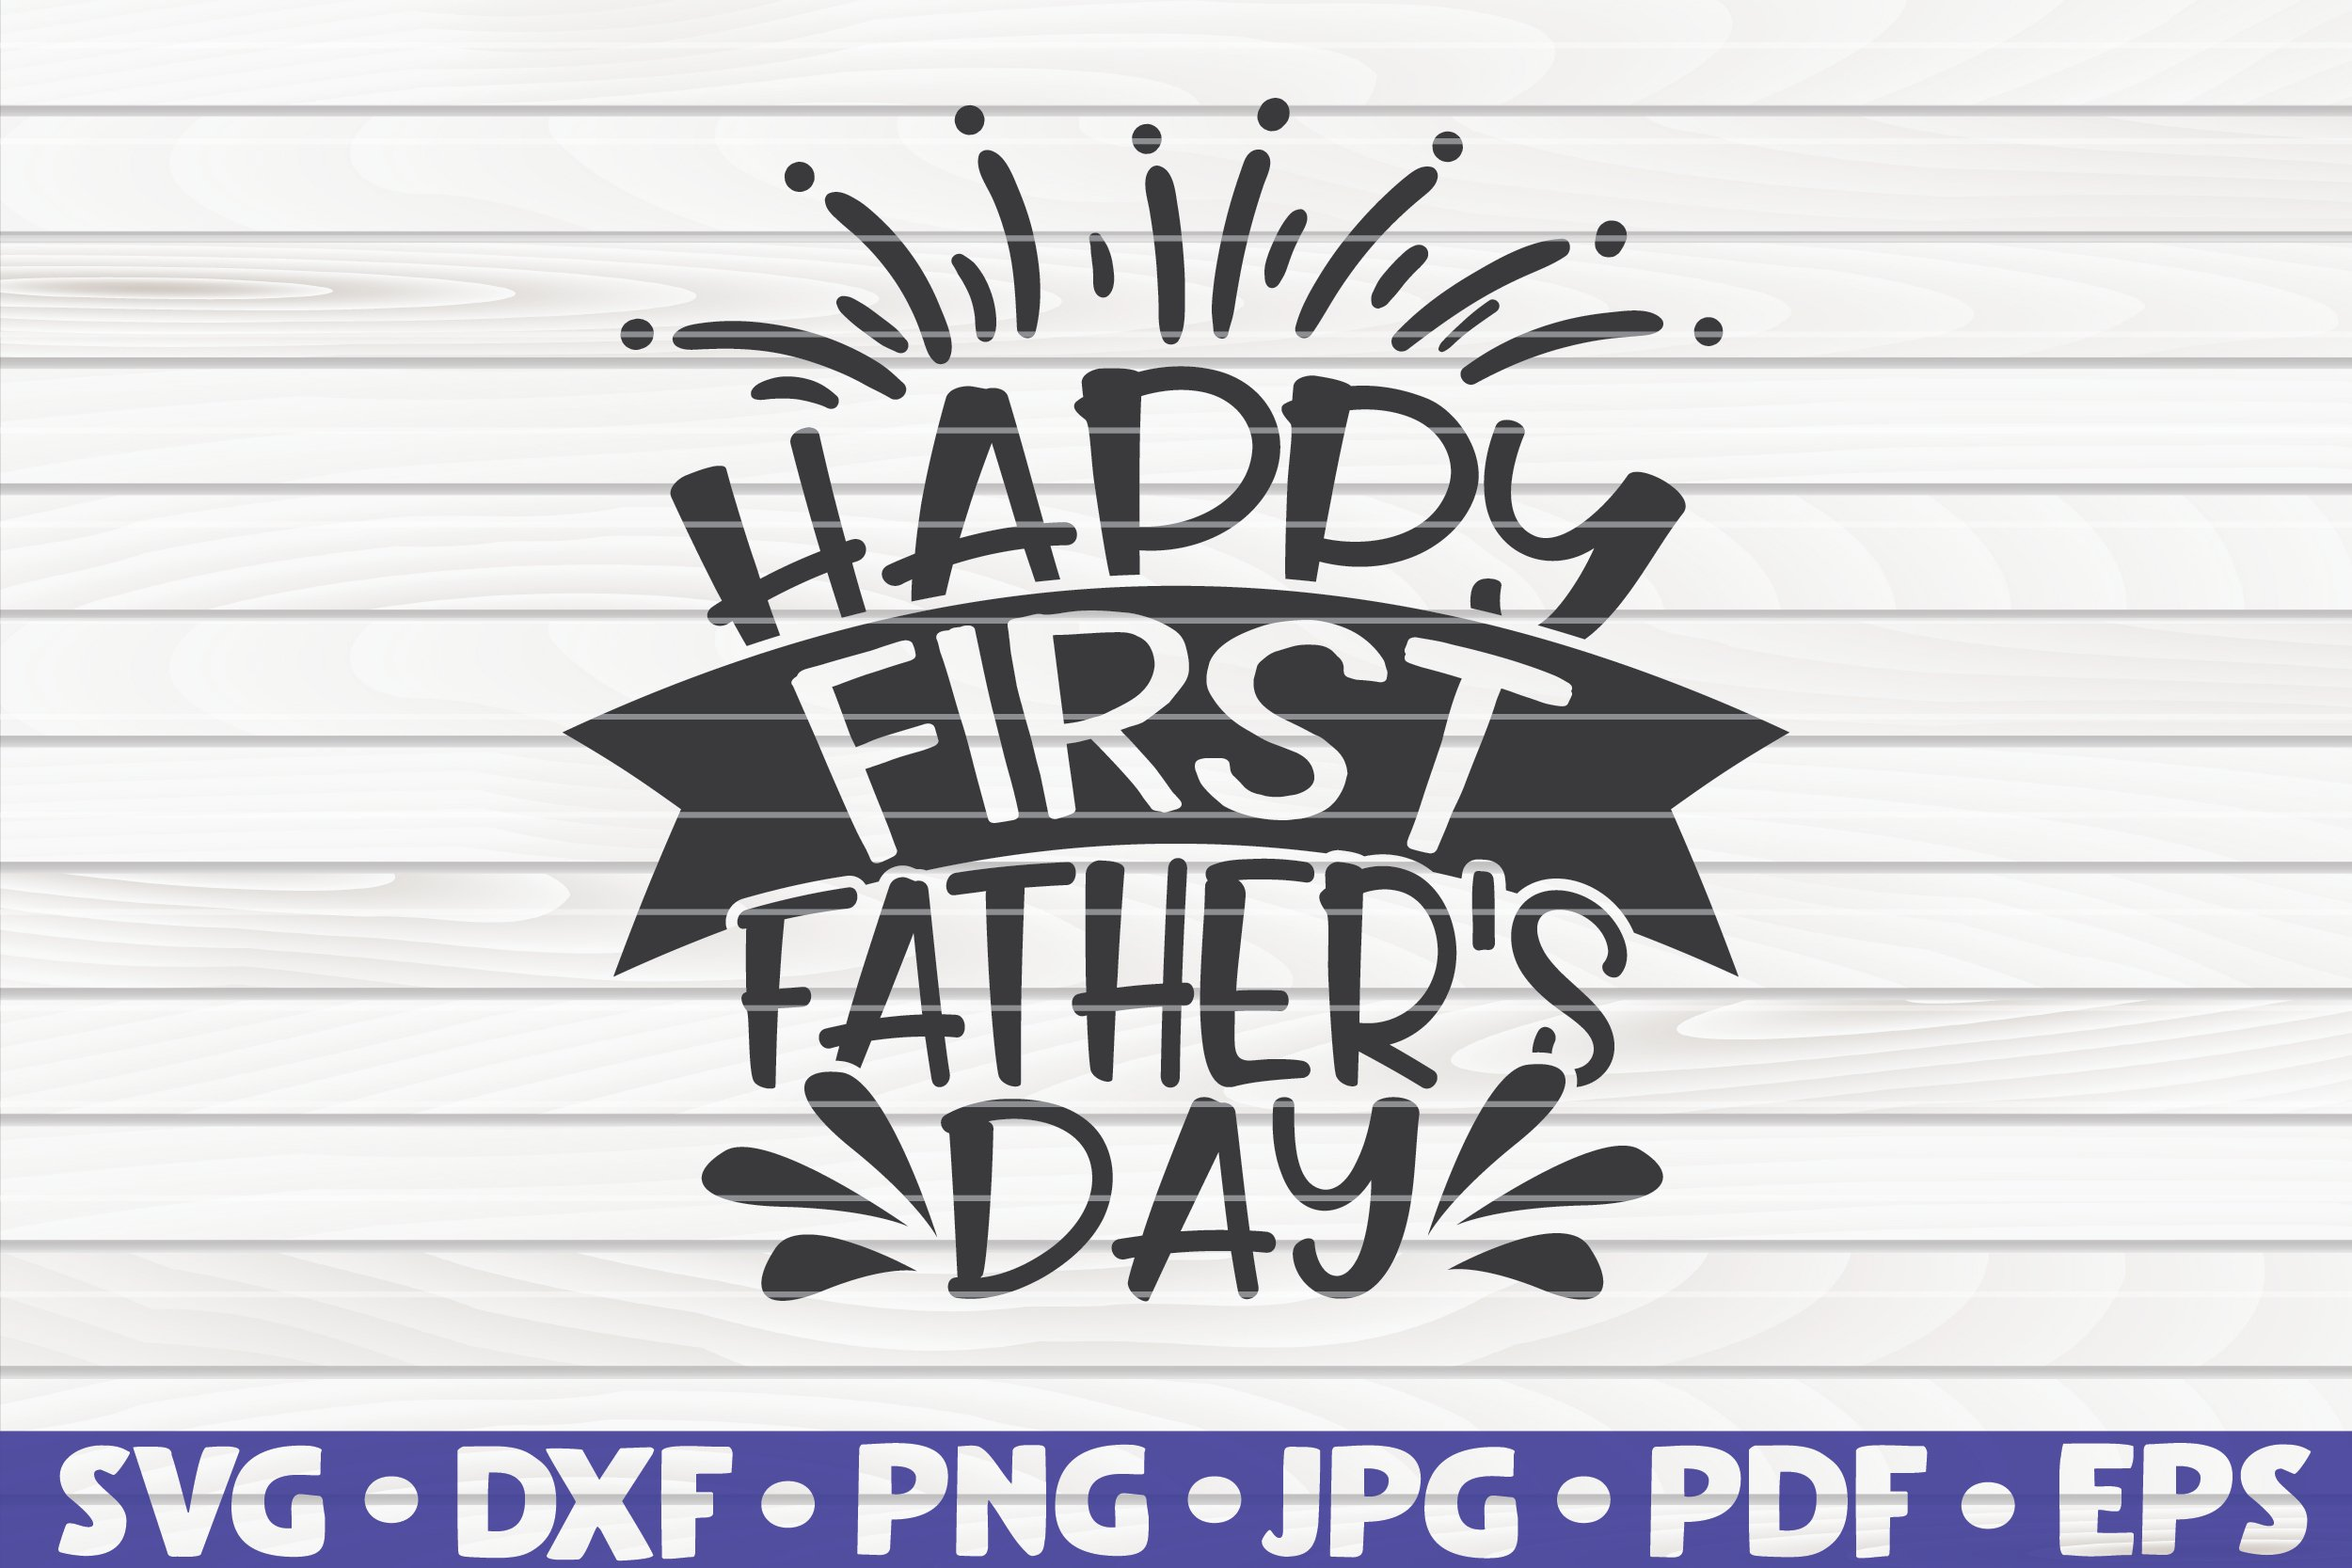 Free .children, happy father's day, father's day gift, digital file, svg cut files, svg clipart, silhouette svg, cricut svg files, decal and vinyl, svg, png, dxf, eps file. Happy First Father S Day Svg Father S Day 516201 Cut Files Design Bundles SVG, PNG, EPS, DXF File